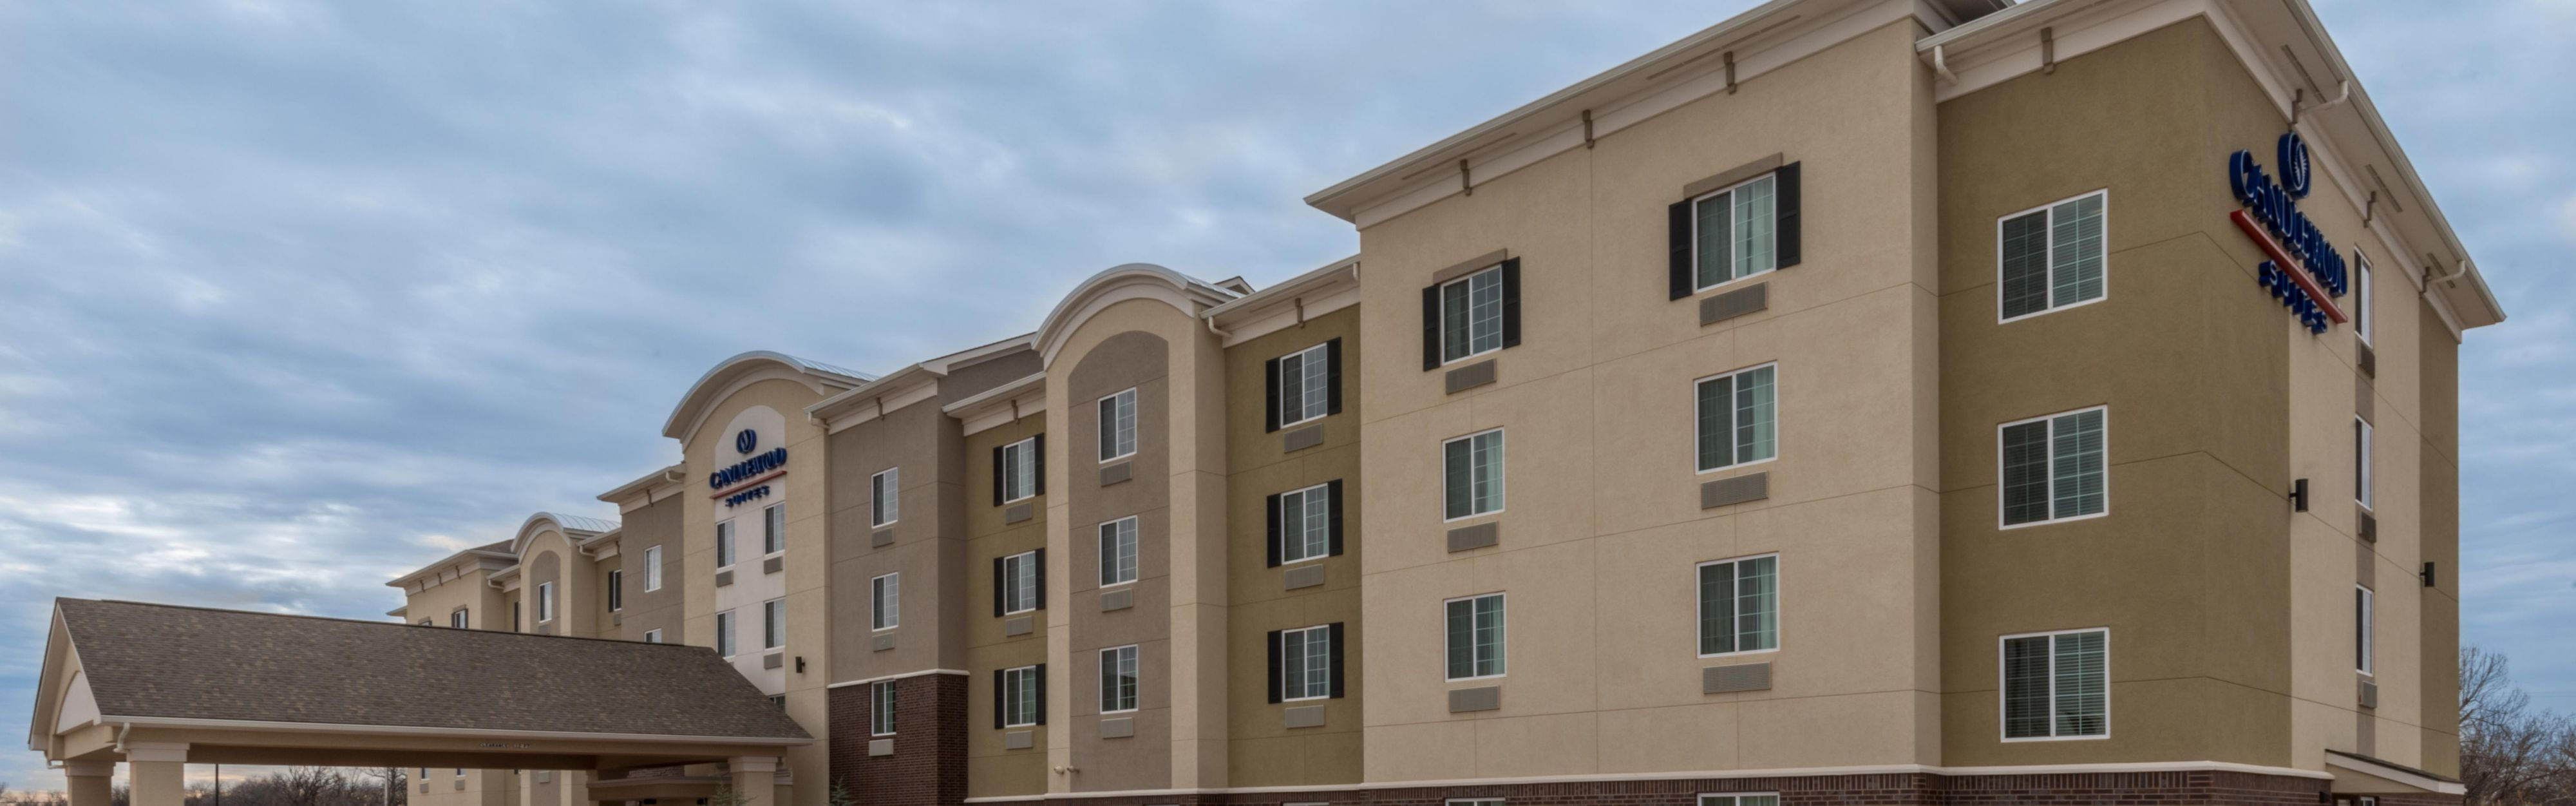 Candlewood Suites Midwest City image 0